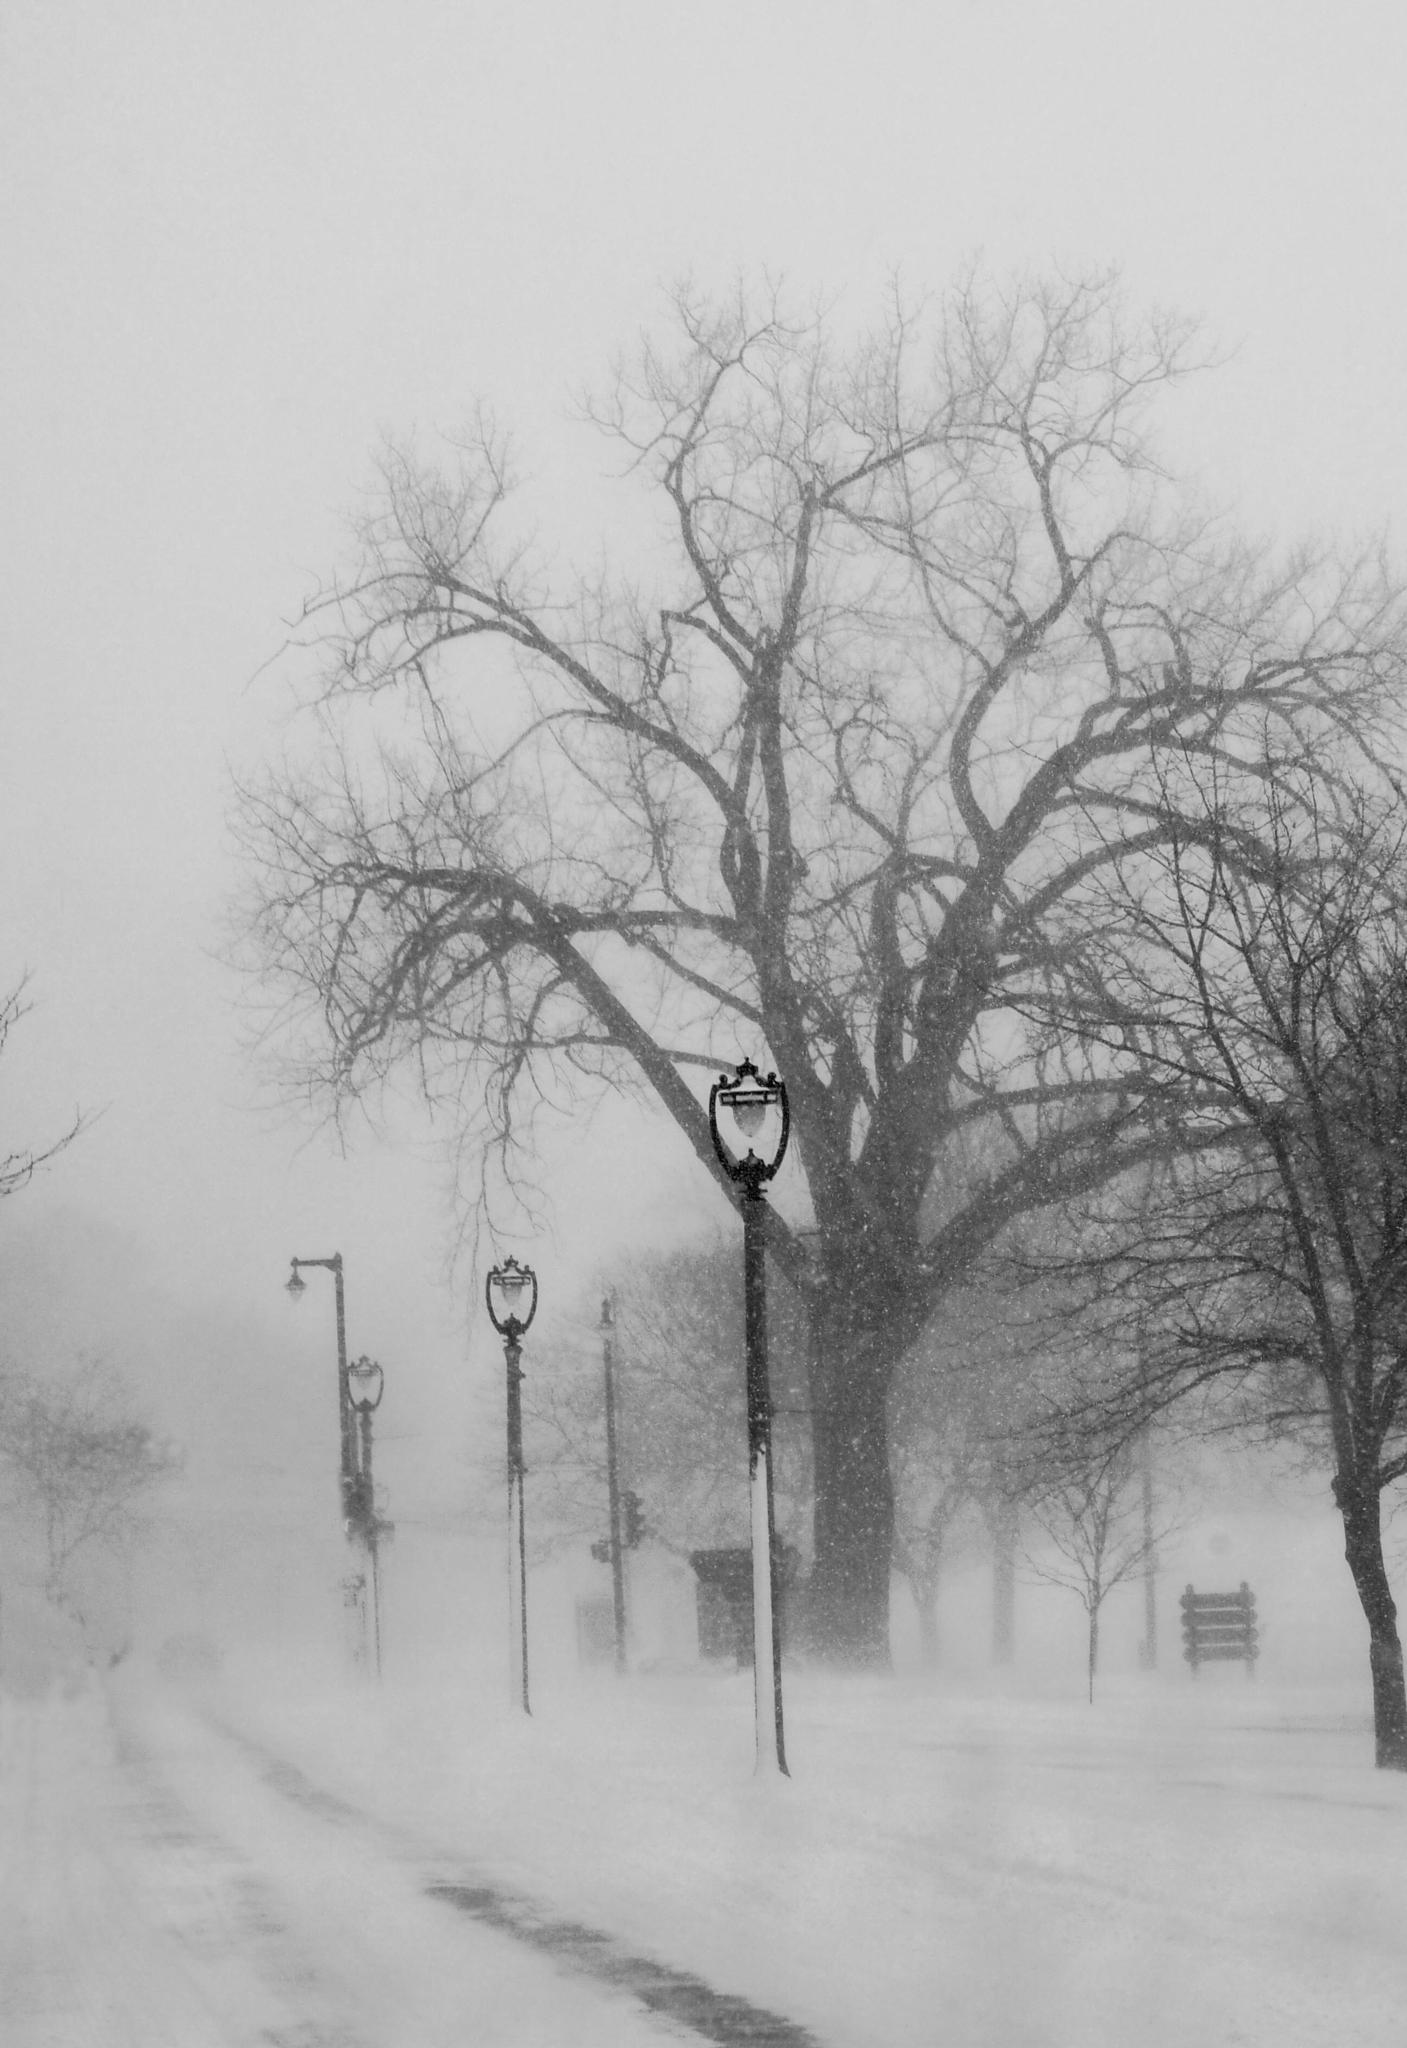 Blizzard conditions by Christine Grubbs